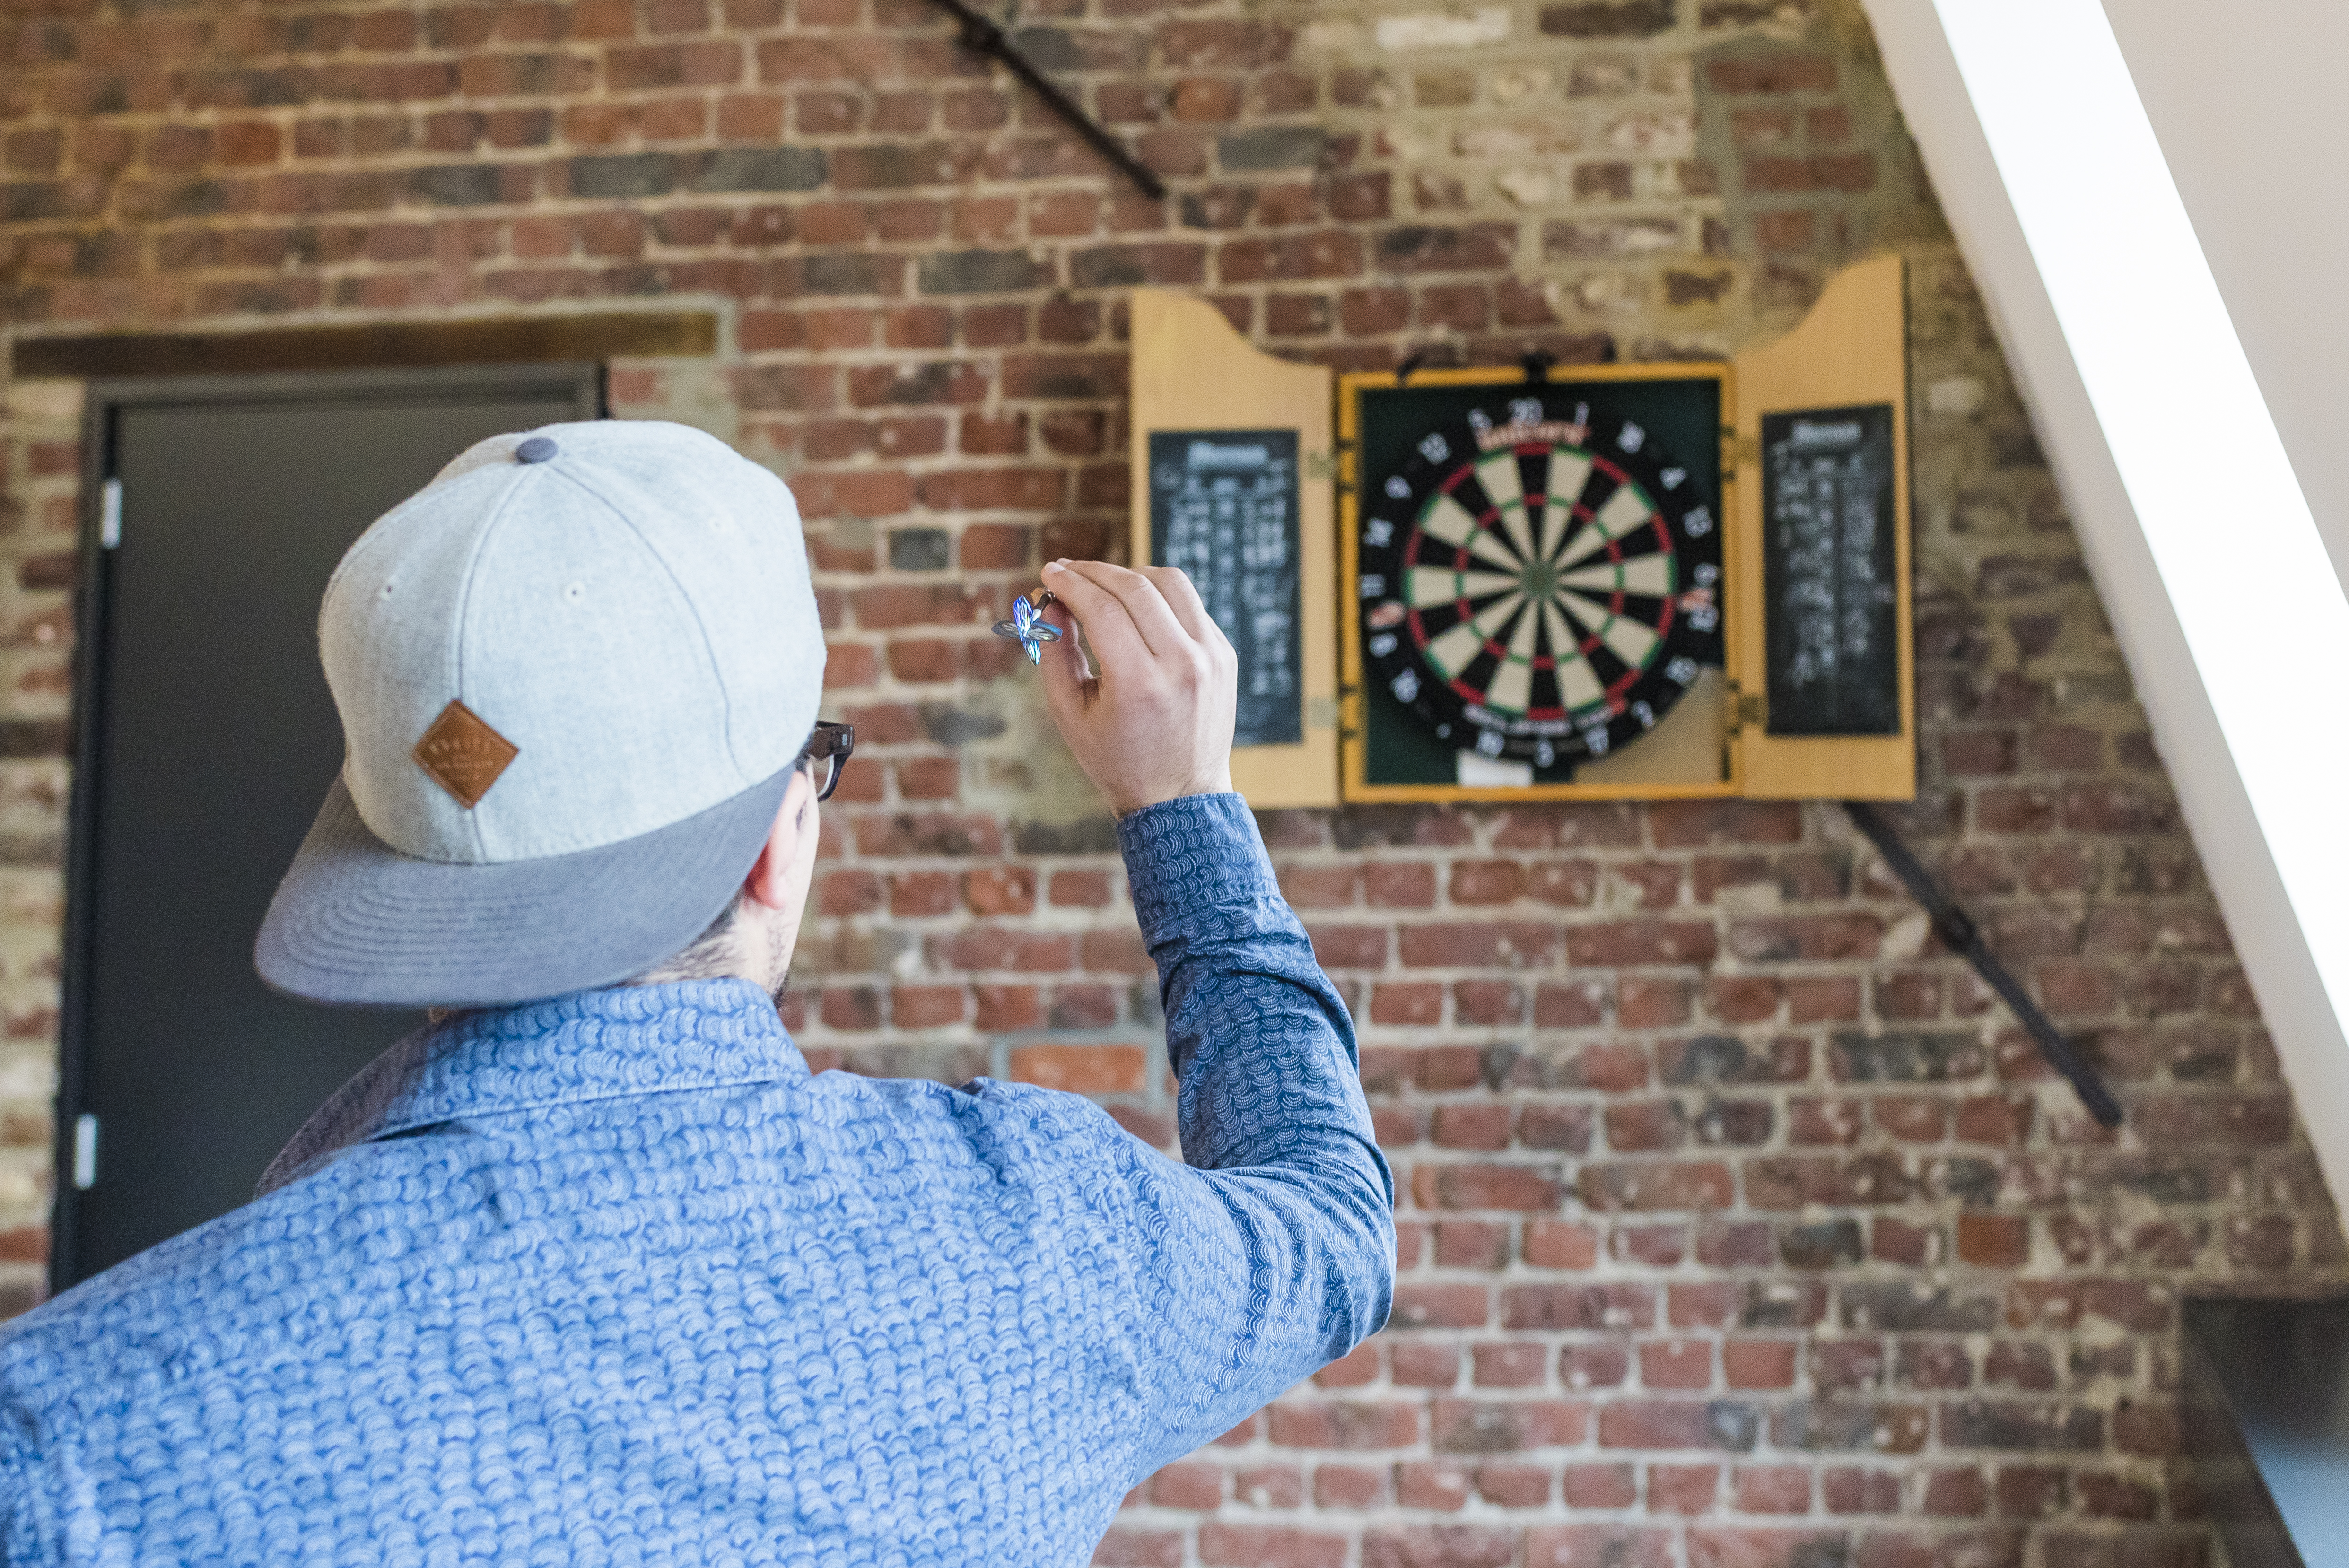 Back View Photo of Man in Blue Dress Shirt and Gray Hat Playing Darts